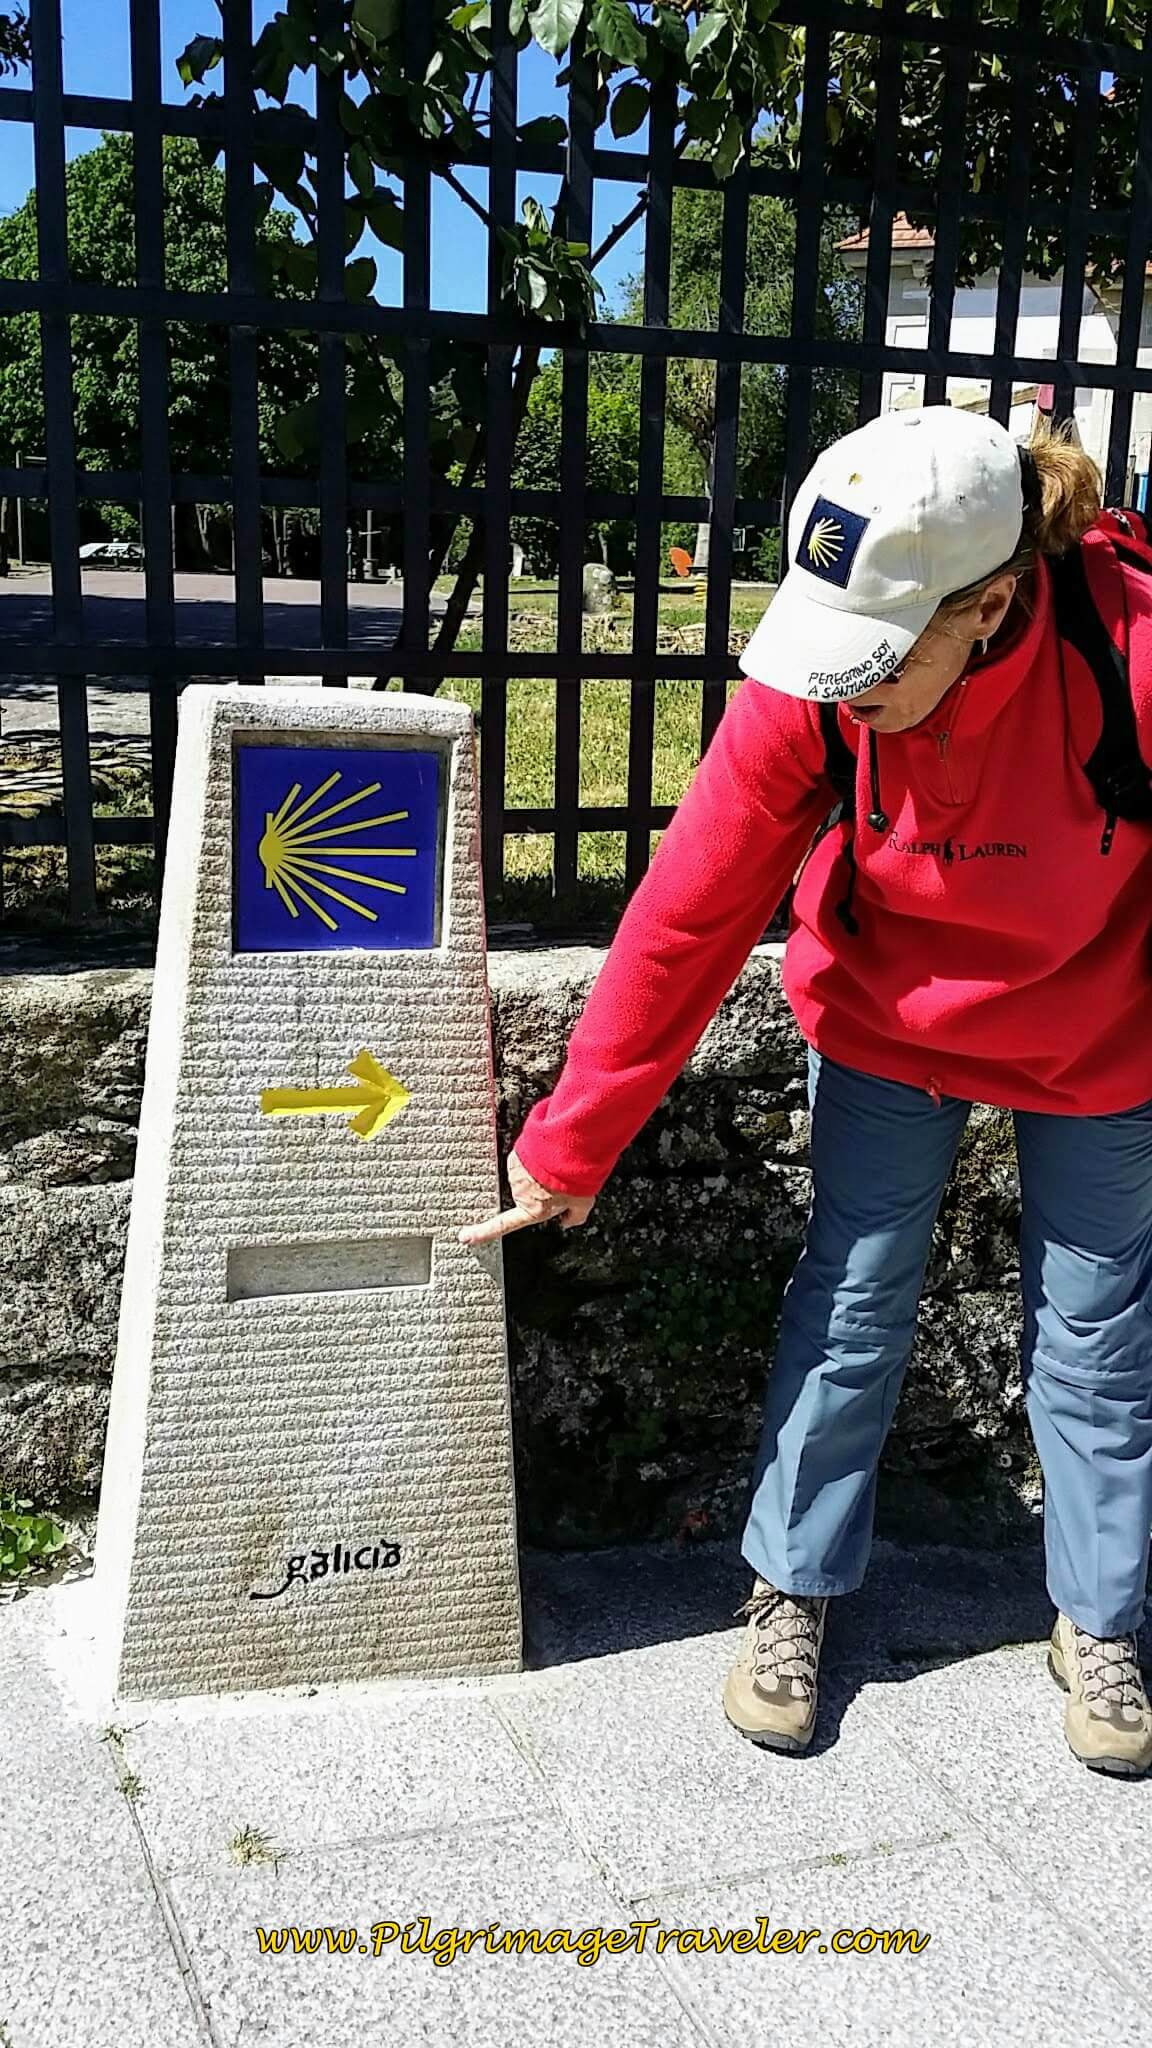 Glyvia pointing to a Camino waymark with kilometer plaque missing on Day Nineteen of the Portuguese Way.